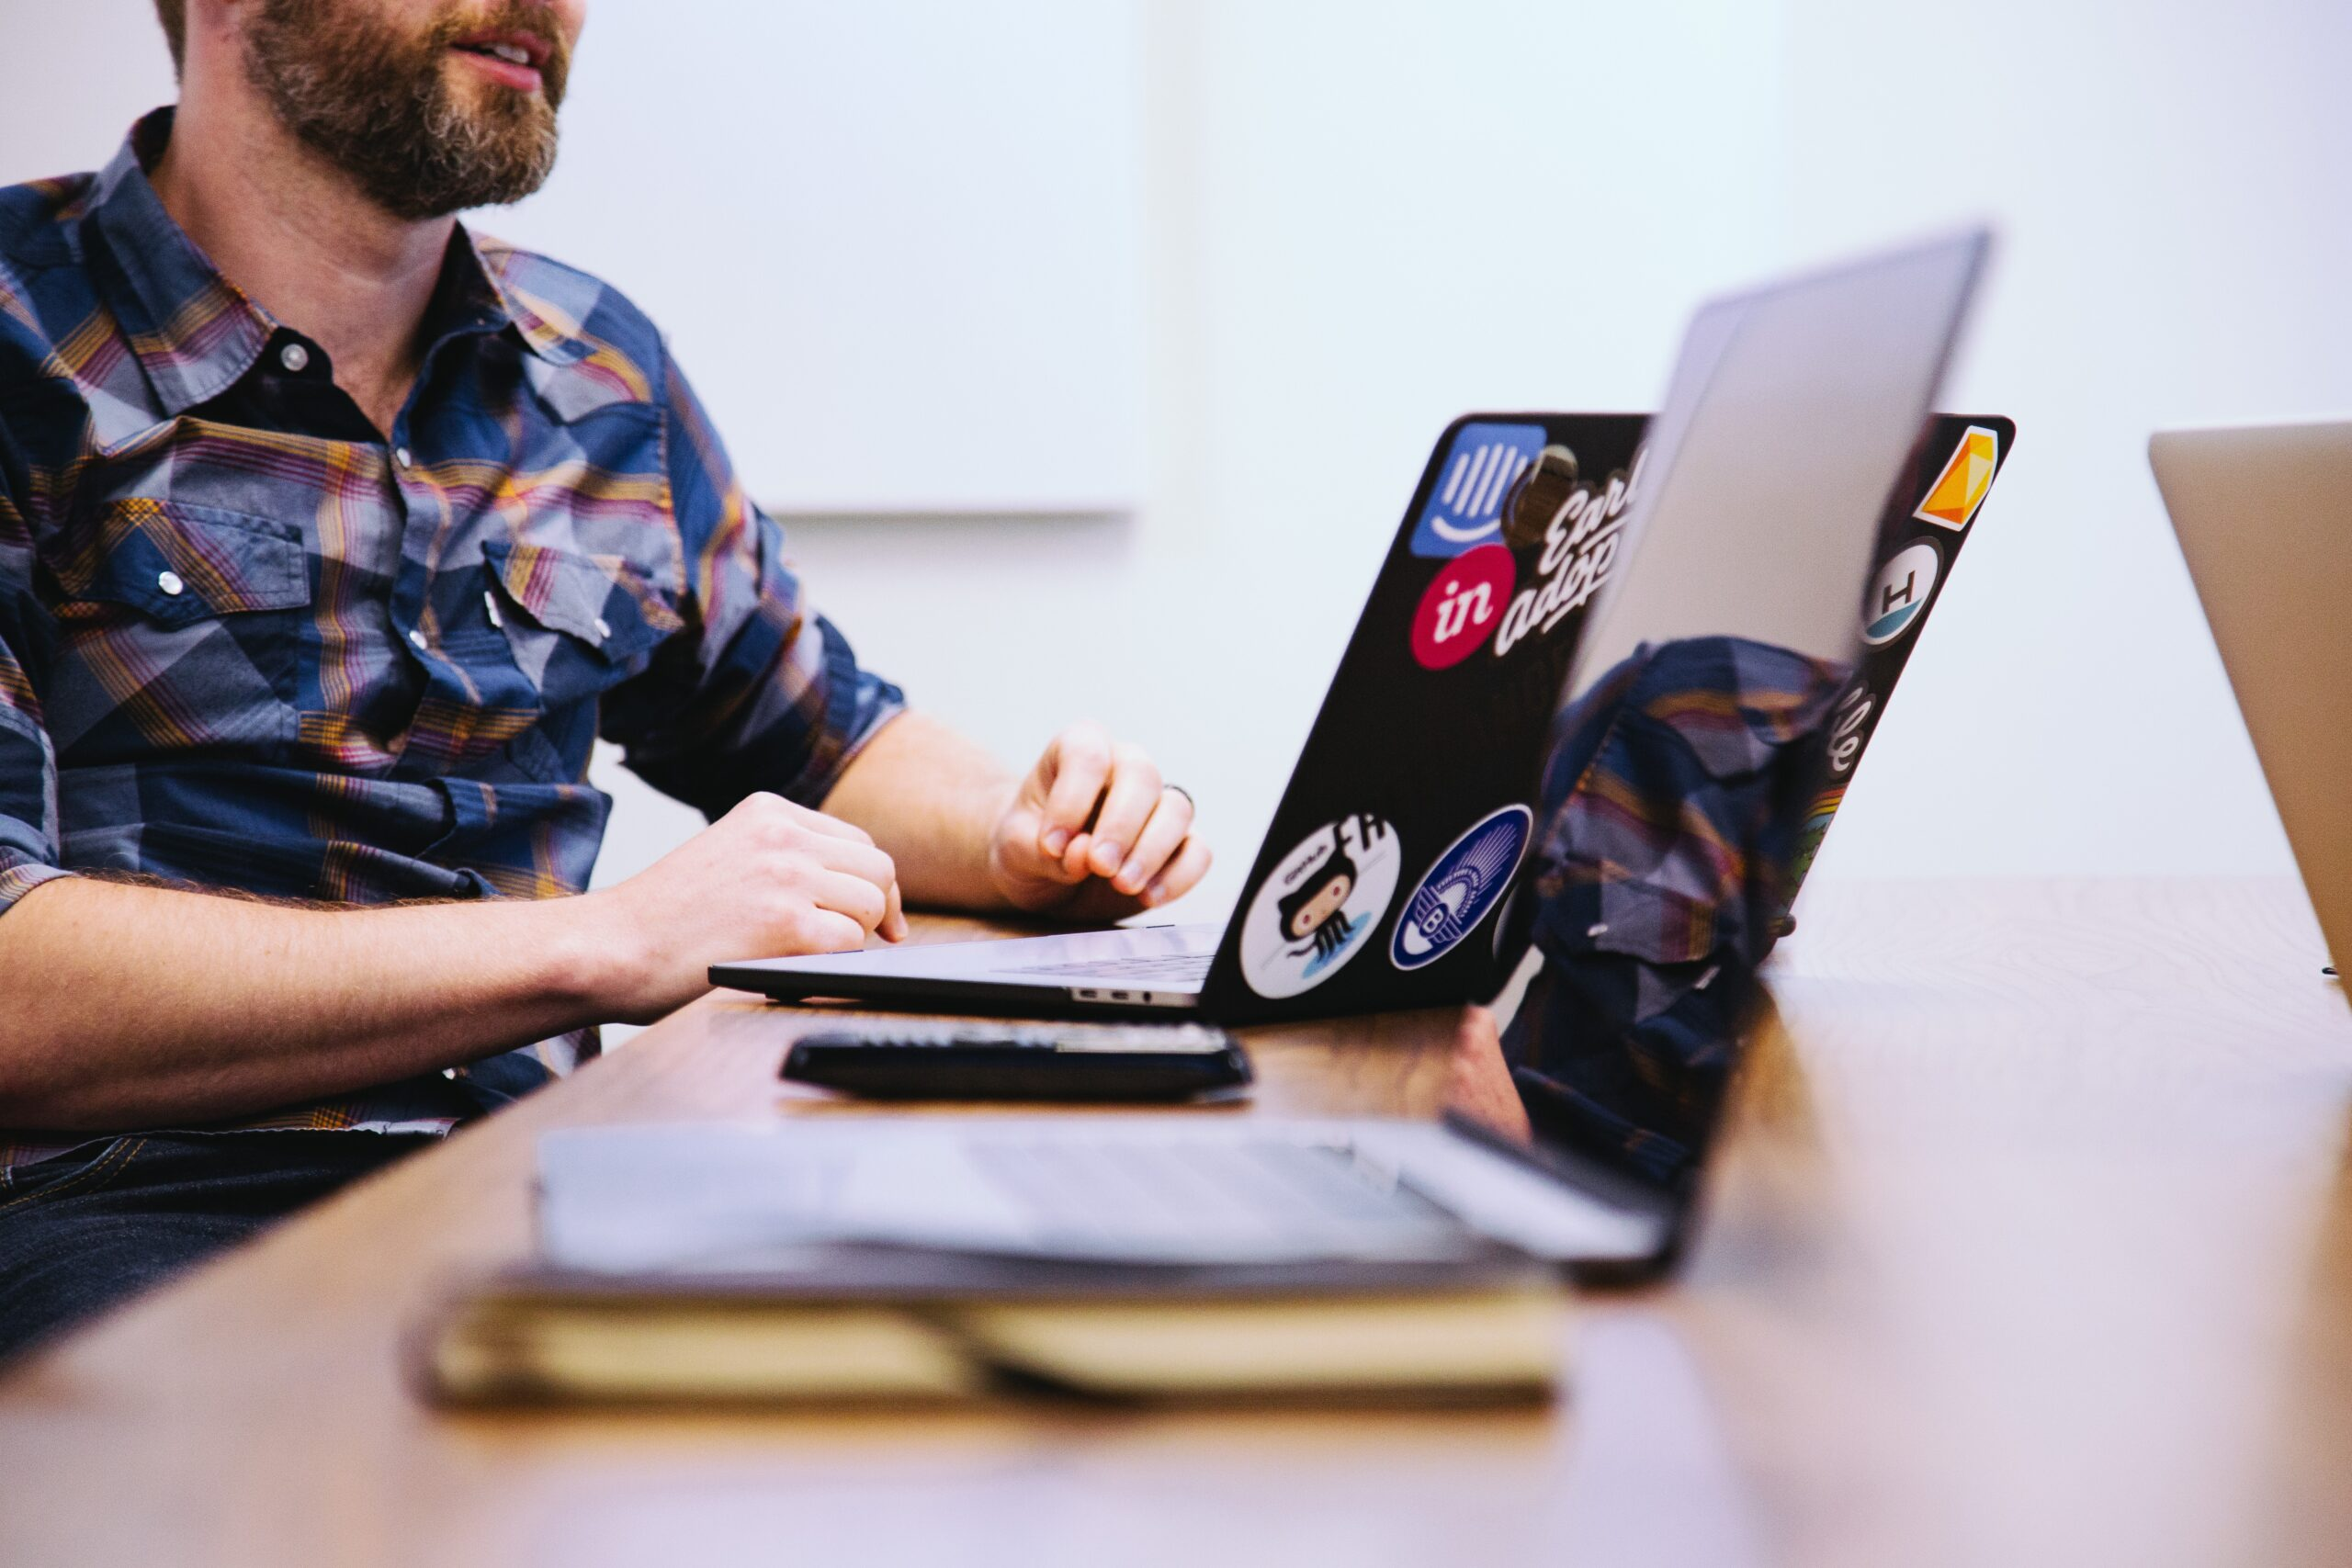 a man using his computer to find ways on how to stop job hopping habits